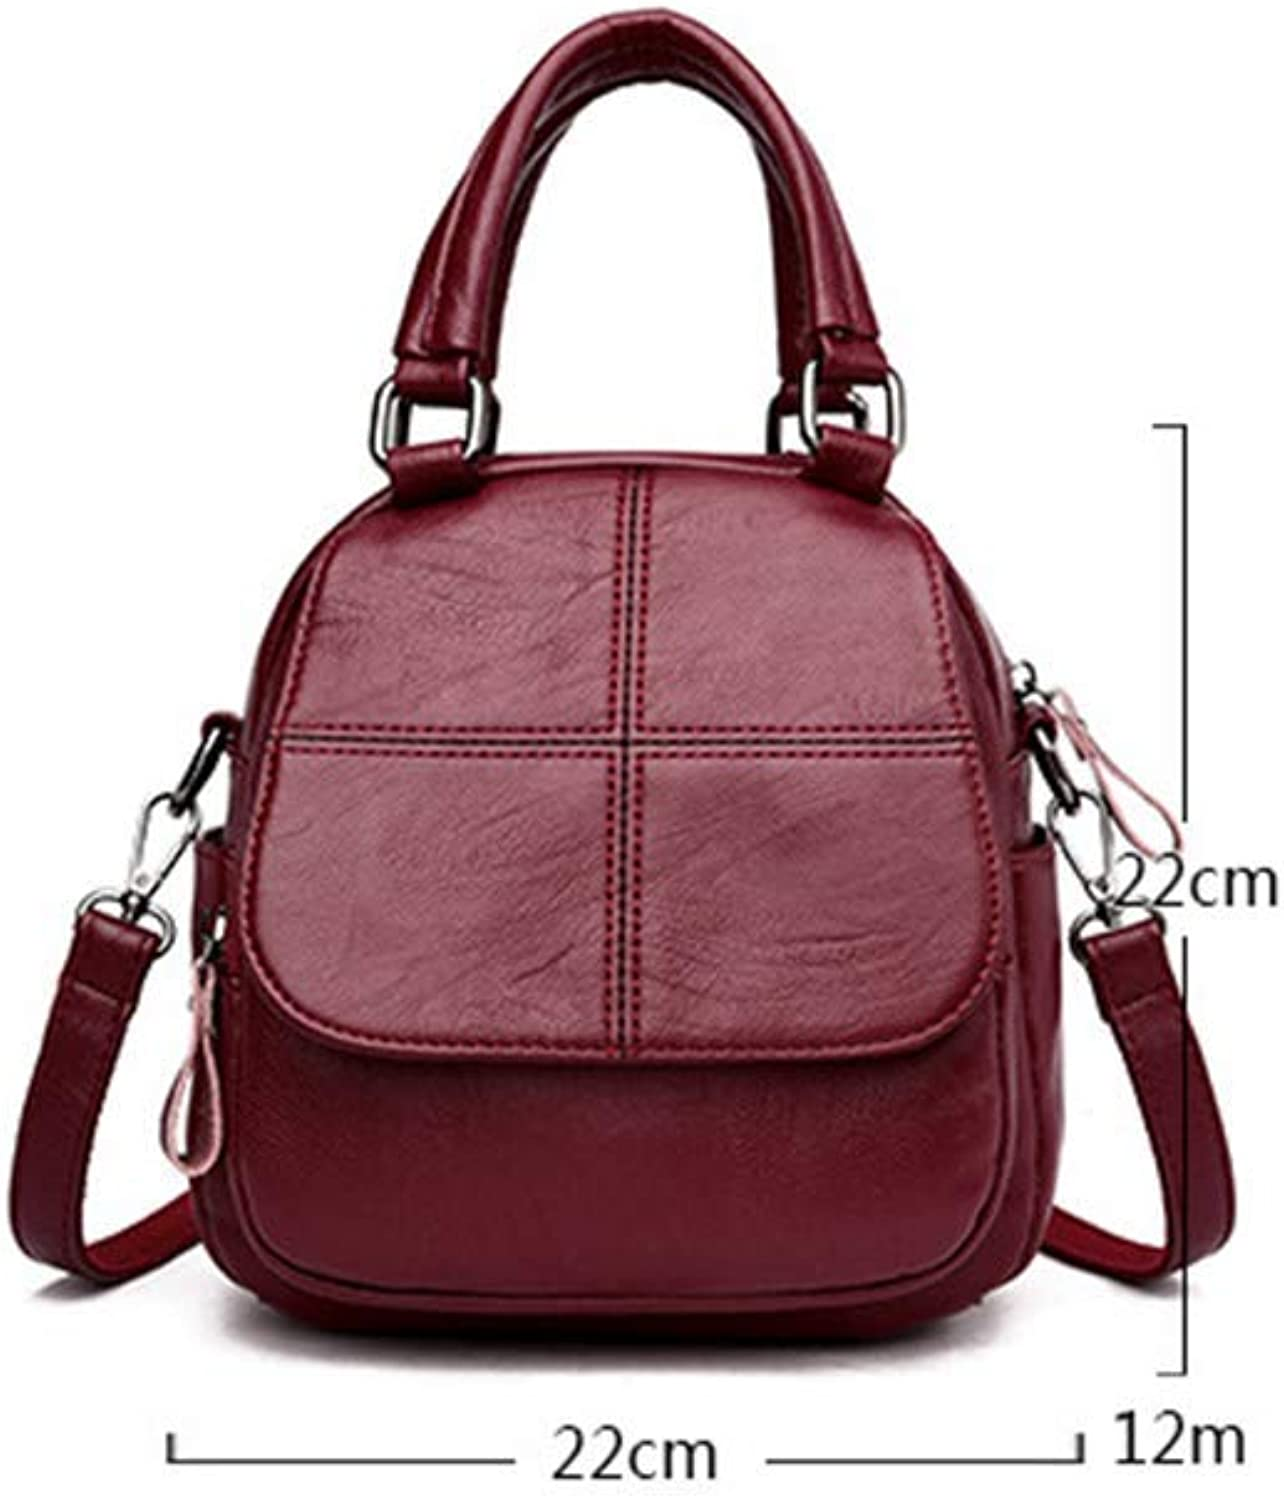 Ladies Handbag Handbag Female Ladies Shoulder Bag Fashion Trend Shoulder Slung Multi-use Handbag (color   A)